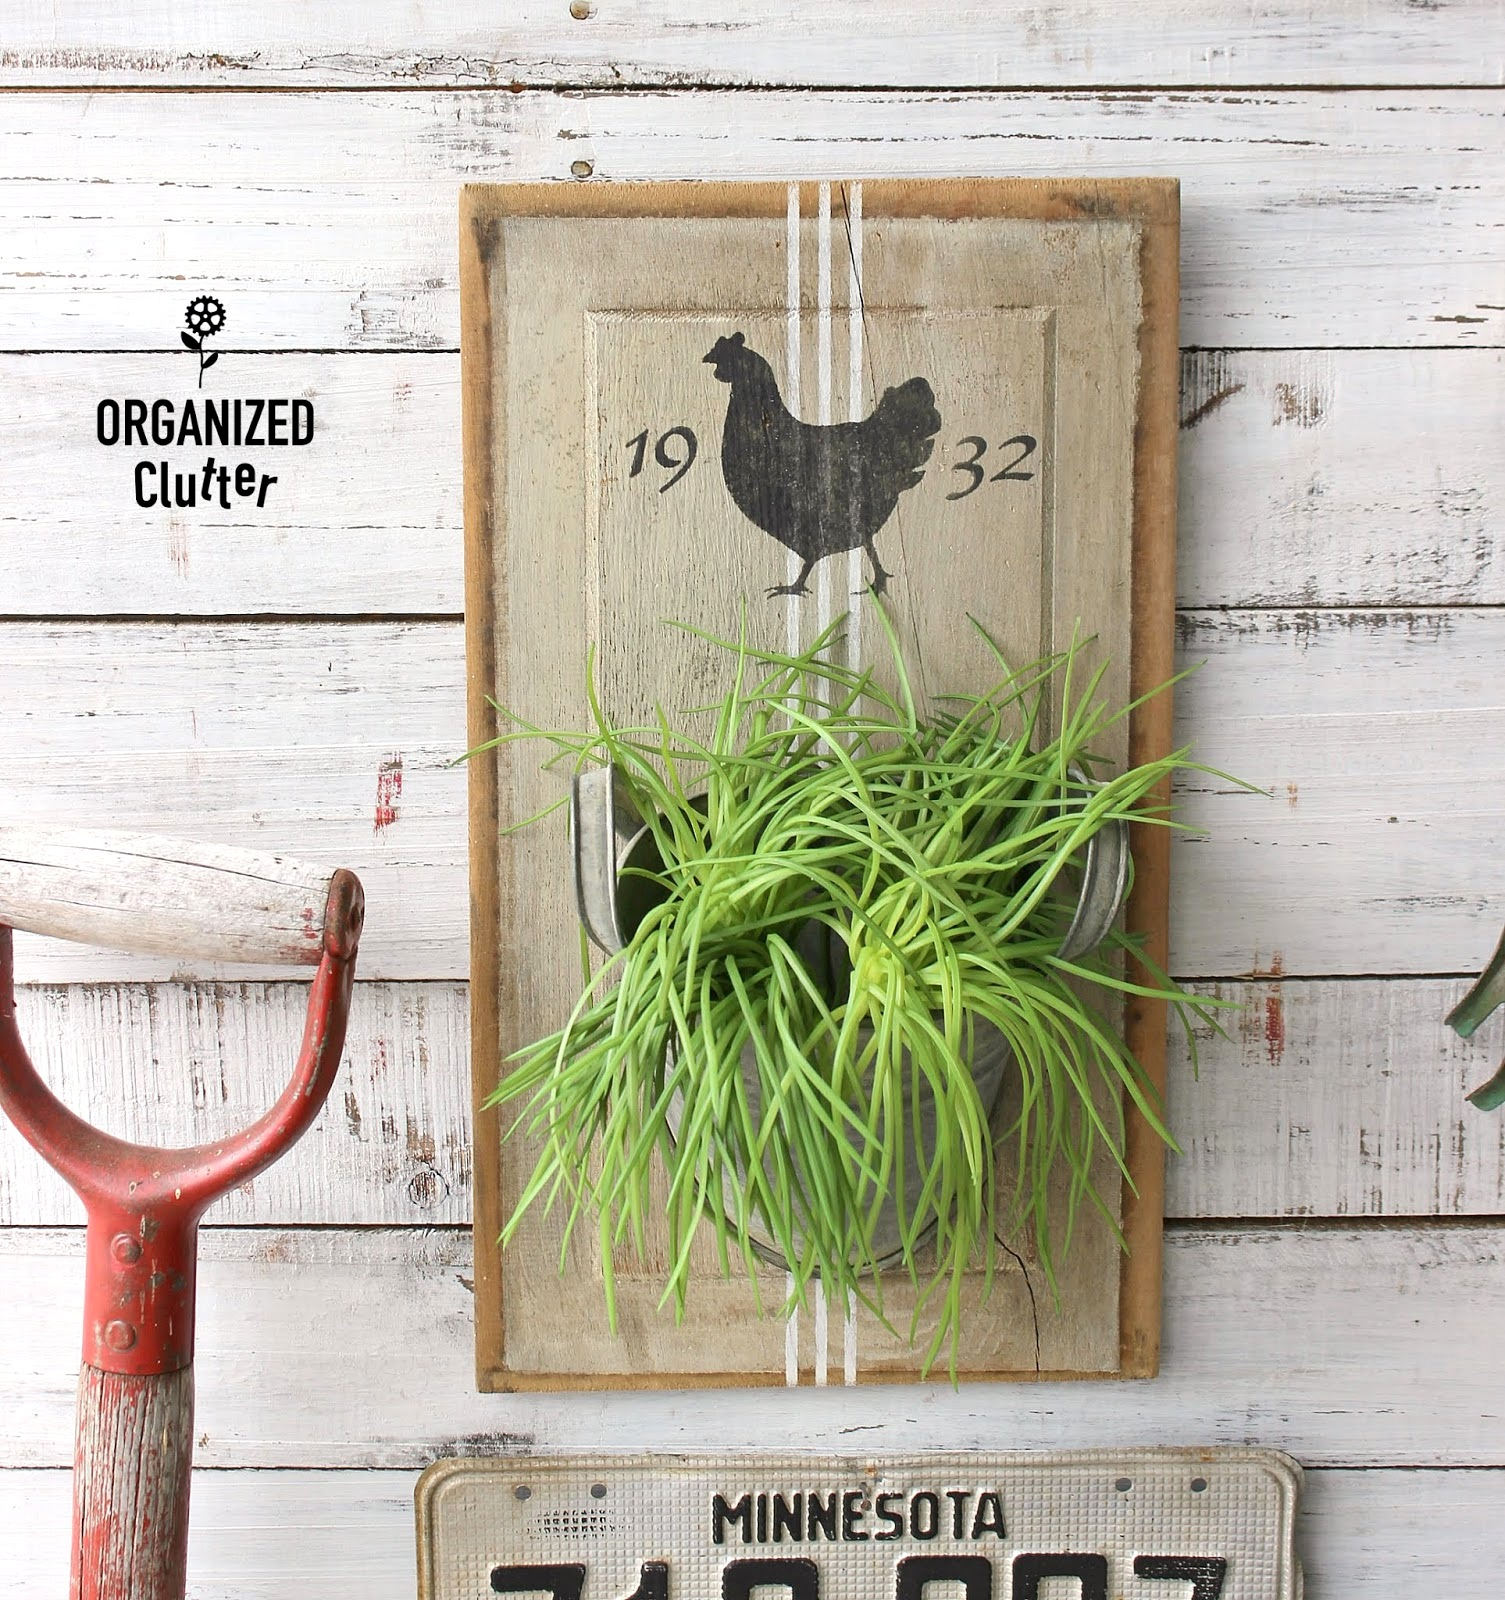 Farmhouse cabinet door wall planter by Organized Clutter, featured on Funky Junk Interiors